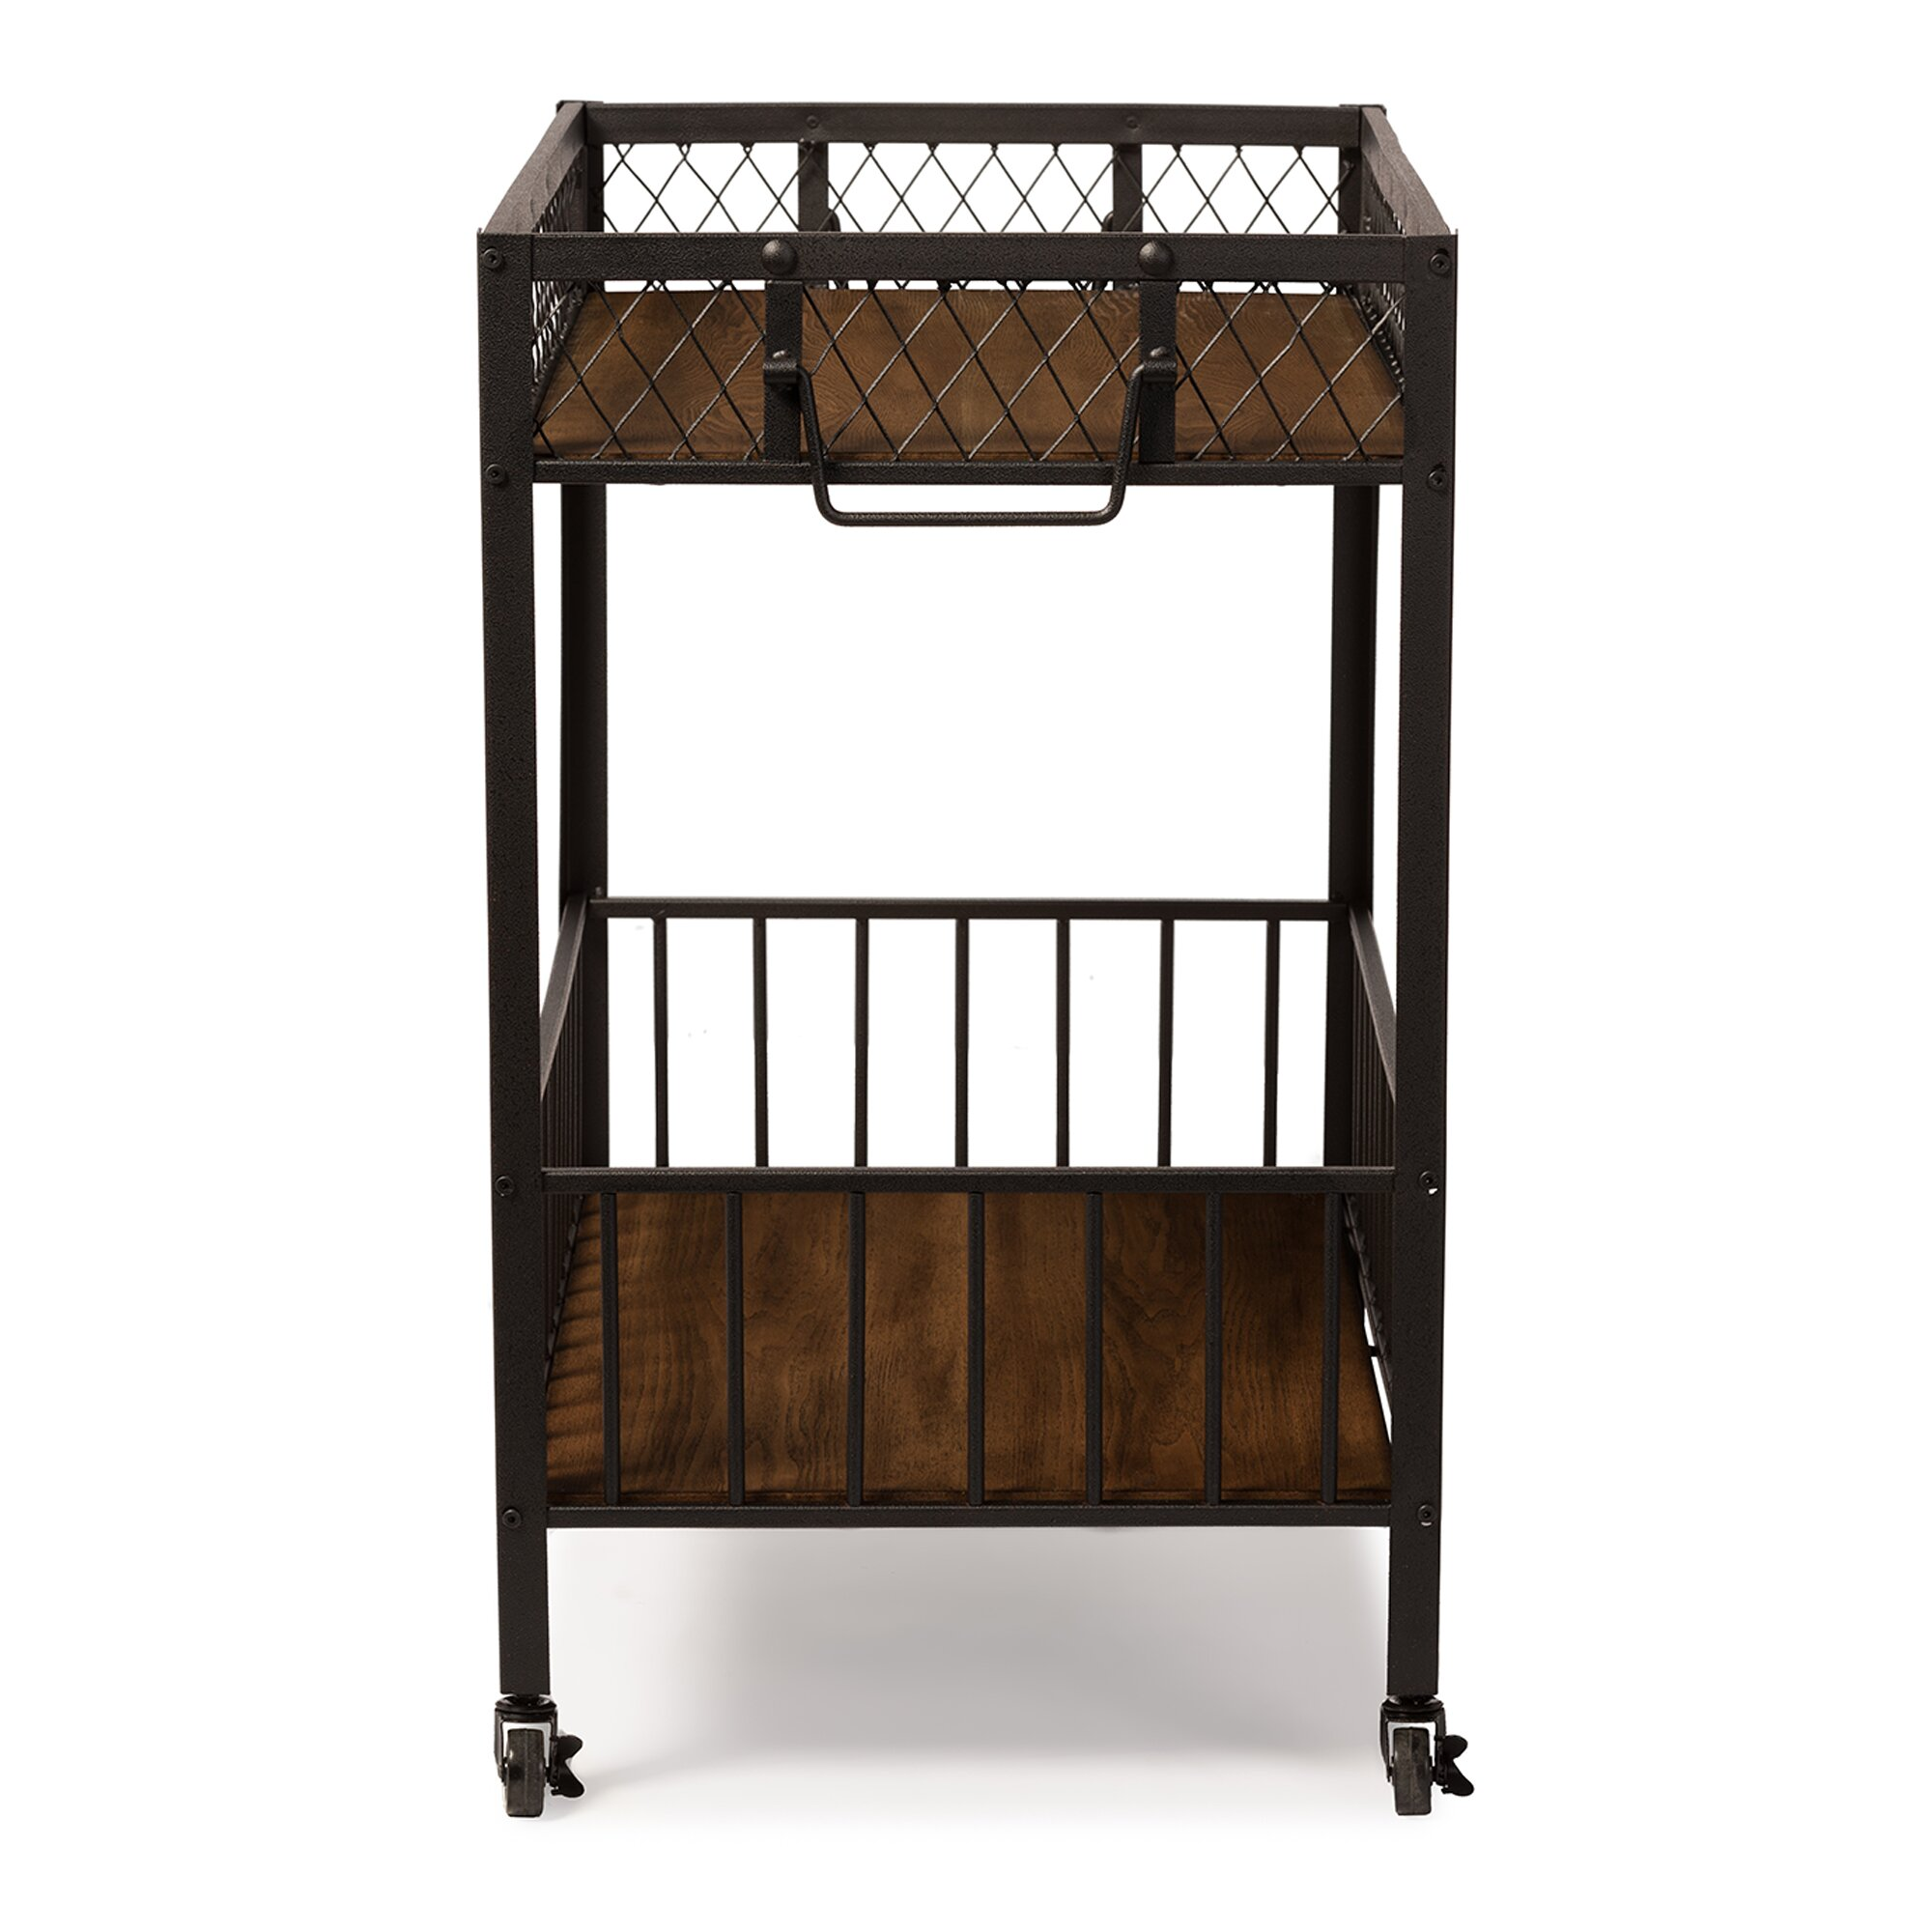 Industrial Kitchen Cart Bar Cart Serving Cart: Wholesale Interiors Baxton Studio Serving Cart & Reviews